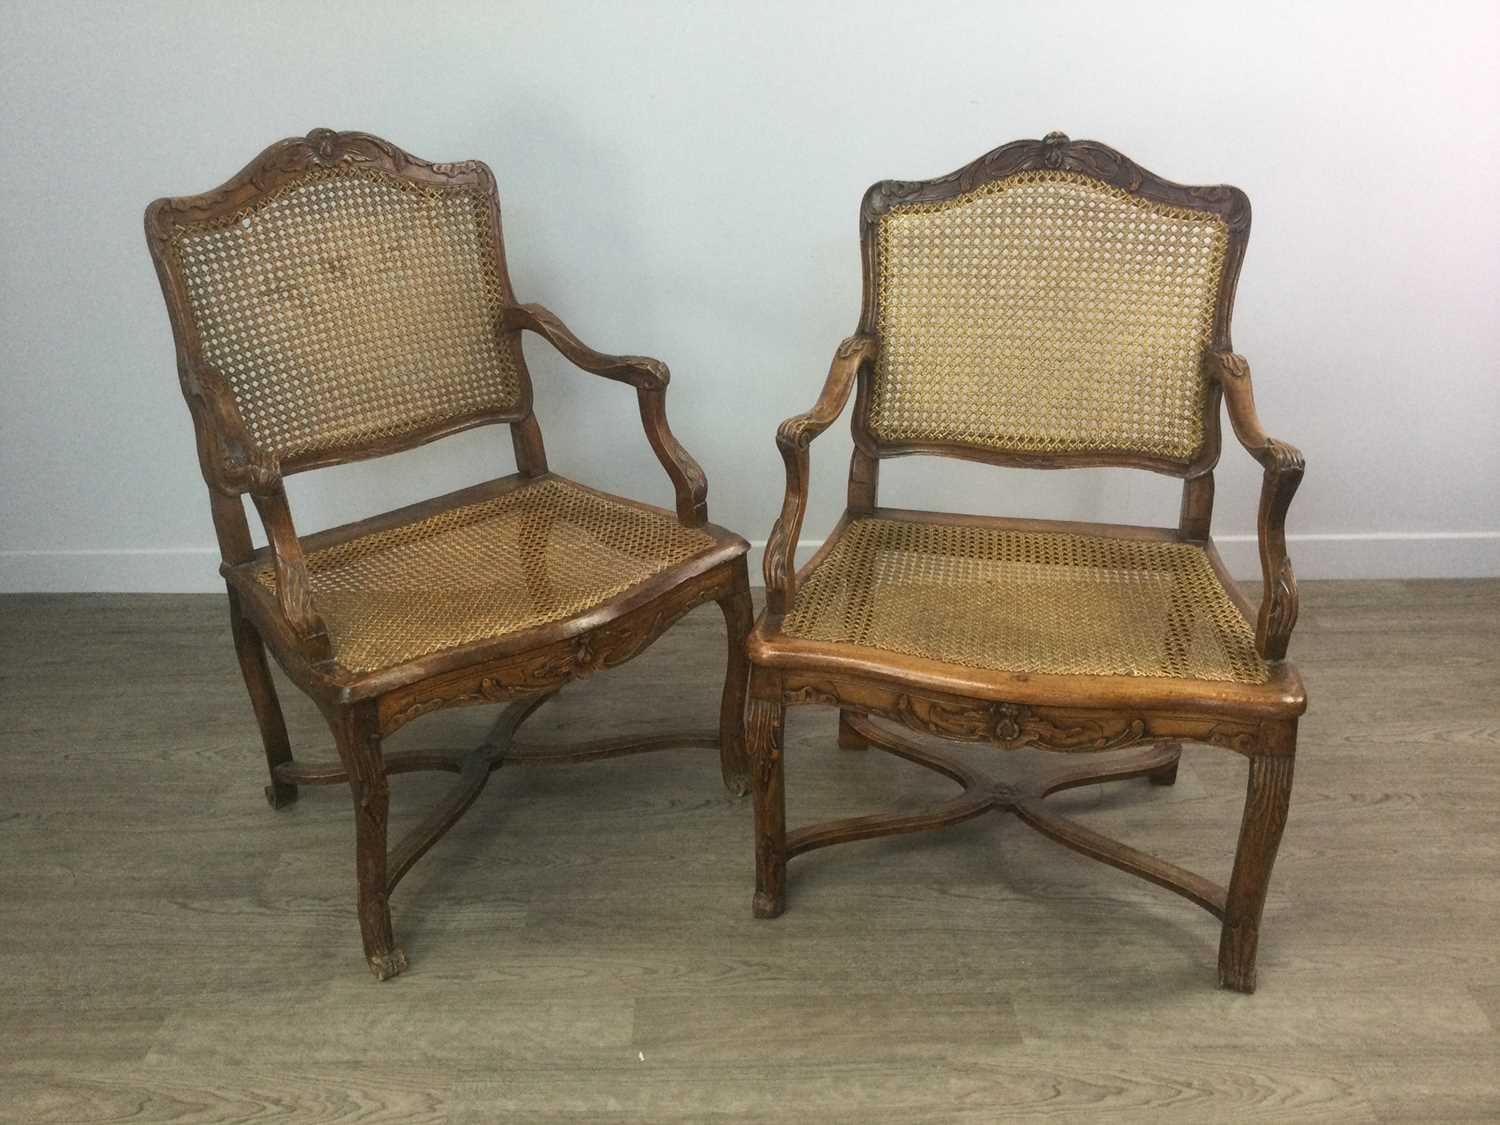 Lot 1407 - A PAIR OF 19TH CENTURY FRENCH PROVINCIAL WALNUT OPEN ELBOW CHAIRS